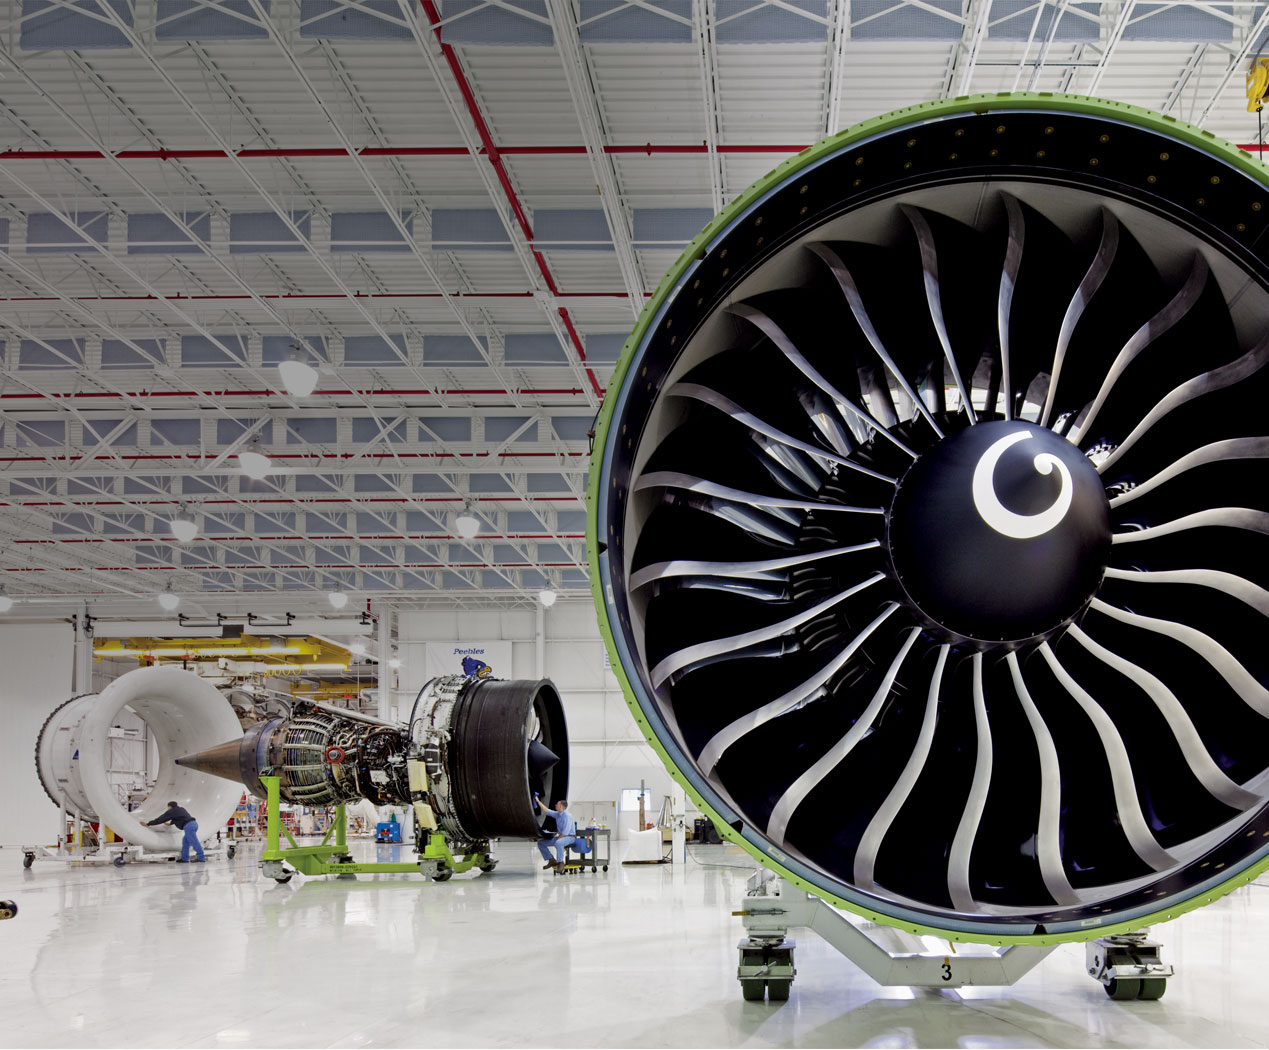 Ge 90 115b Turbofan Engine World Record Ge Engines 2105954 Hd Wallpaper Backgrounds Download